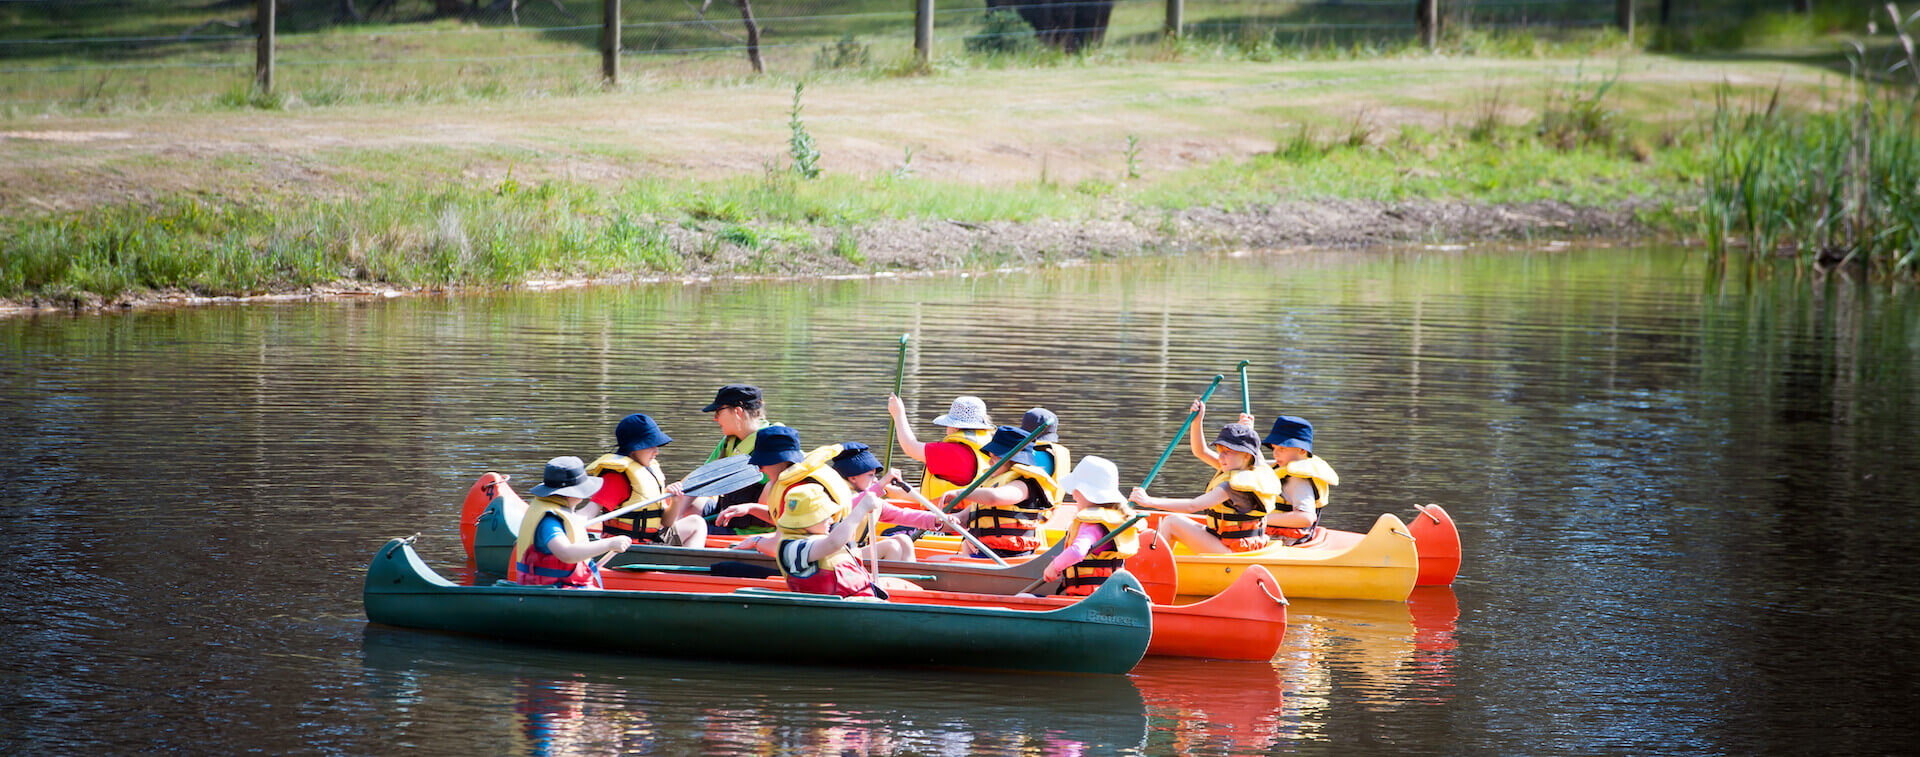 Kids Canoeing